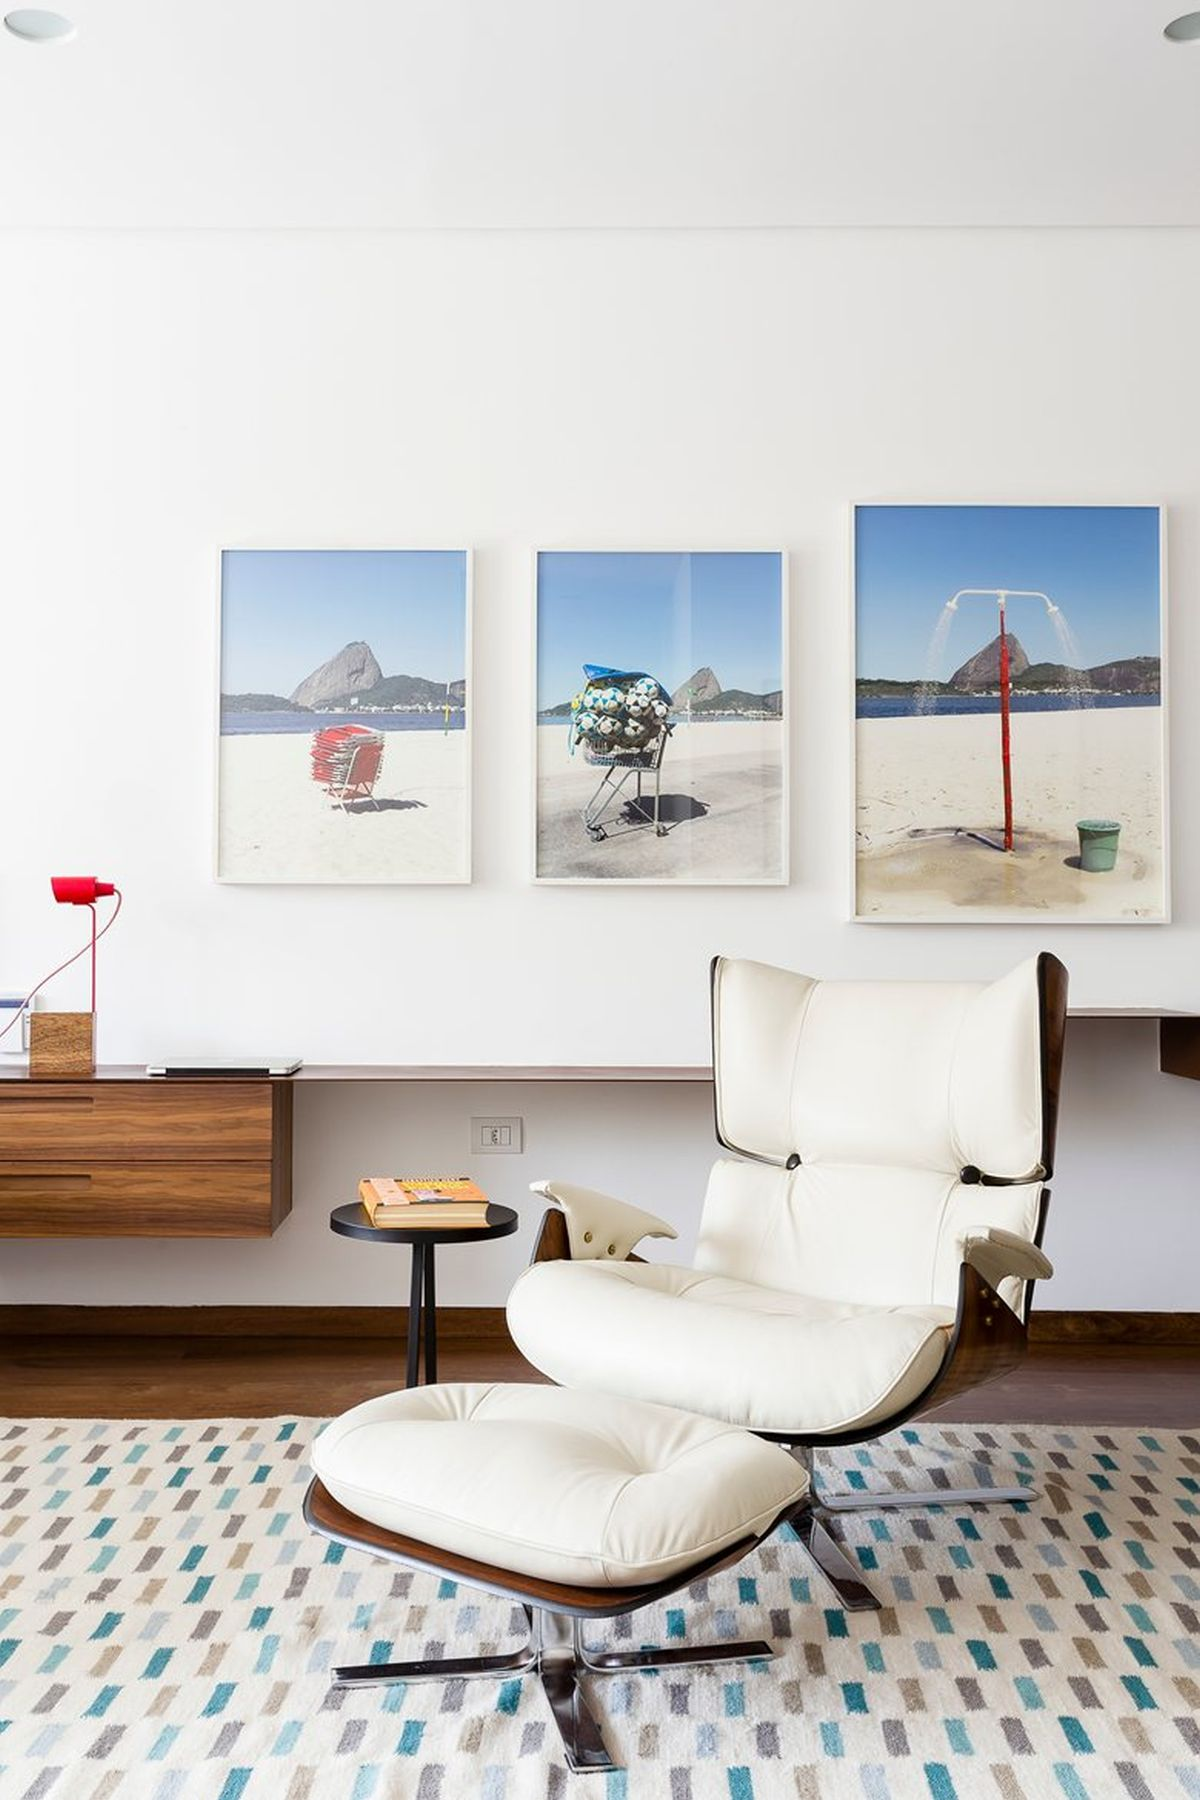 AA House lounge chair in office